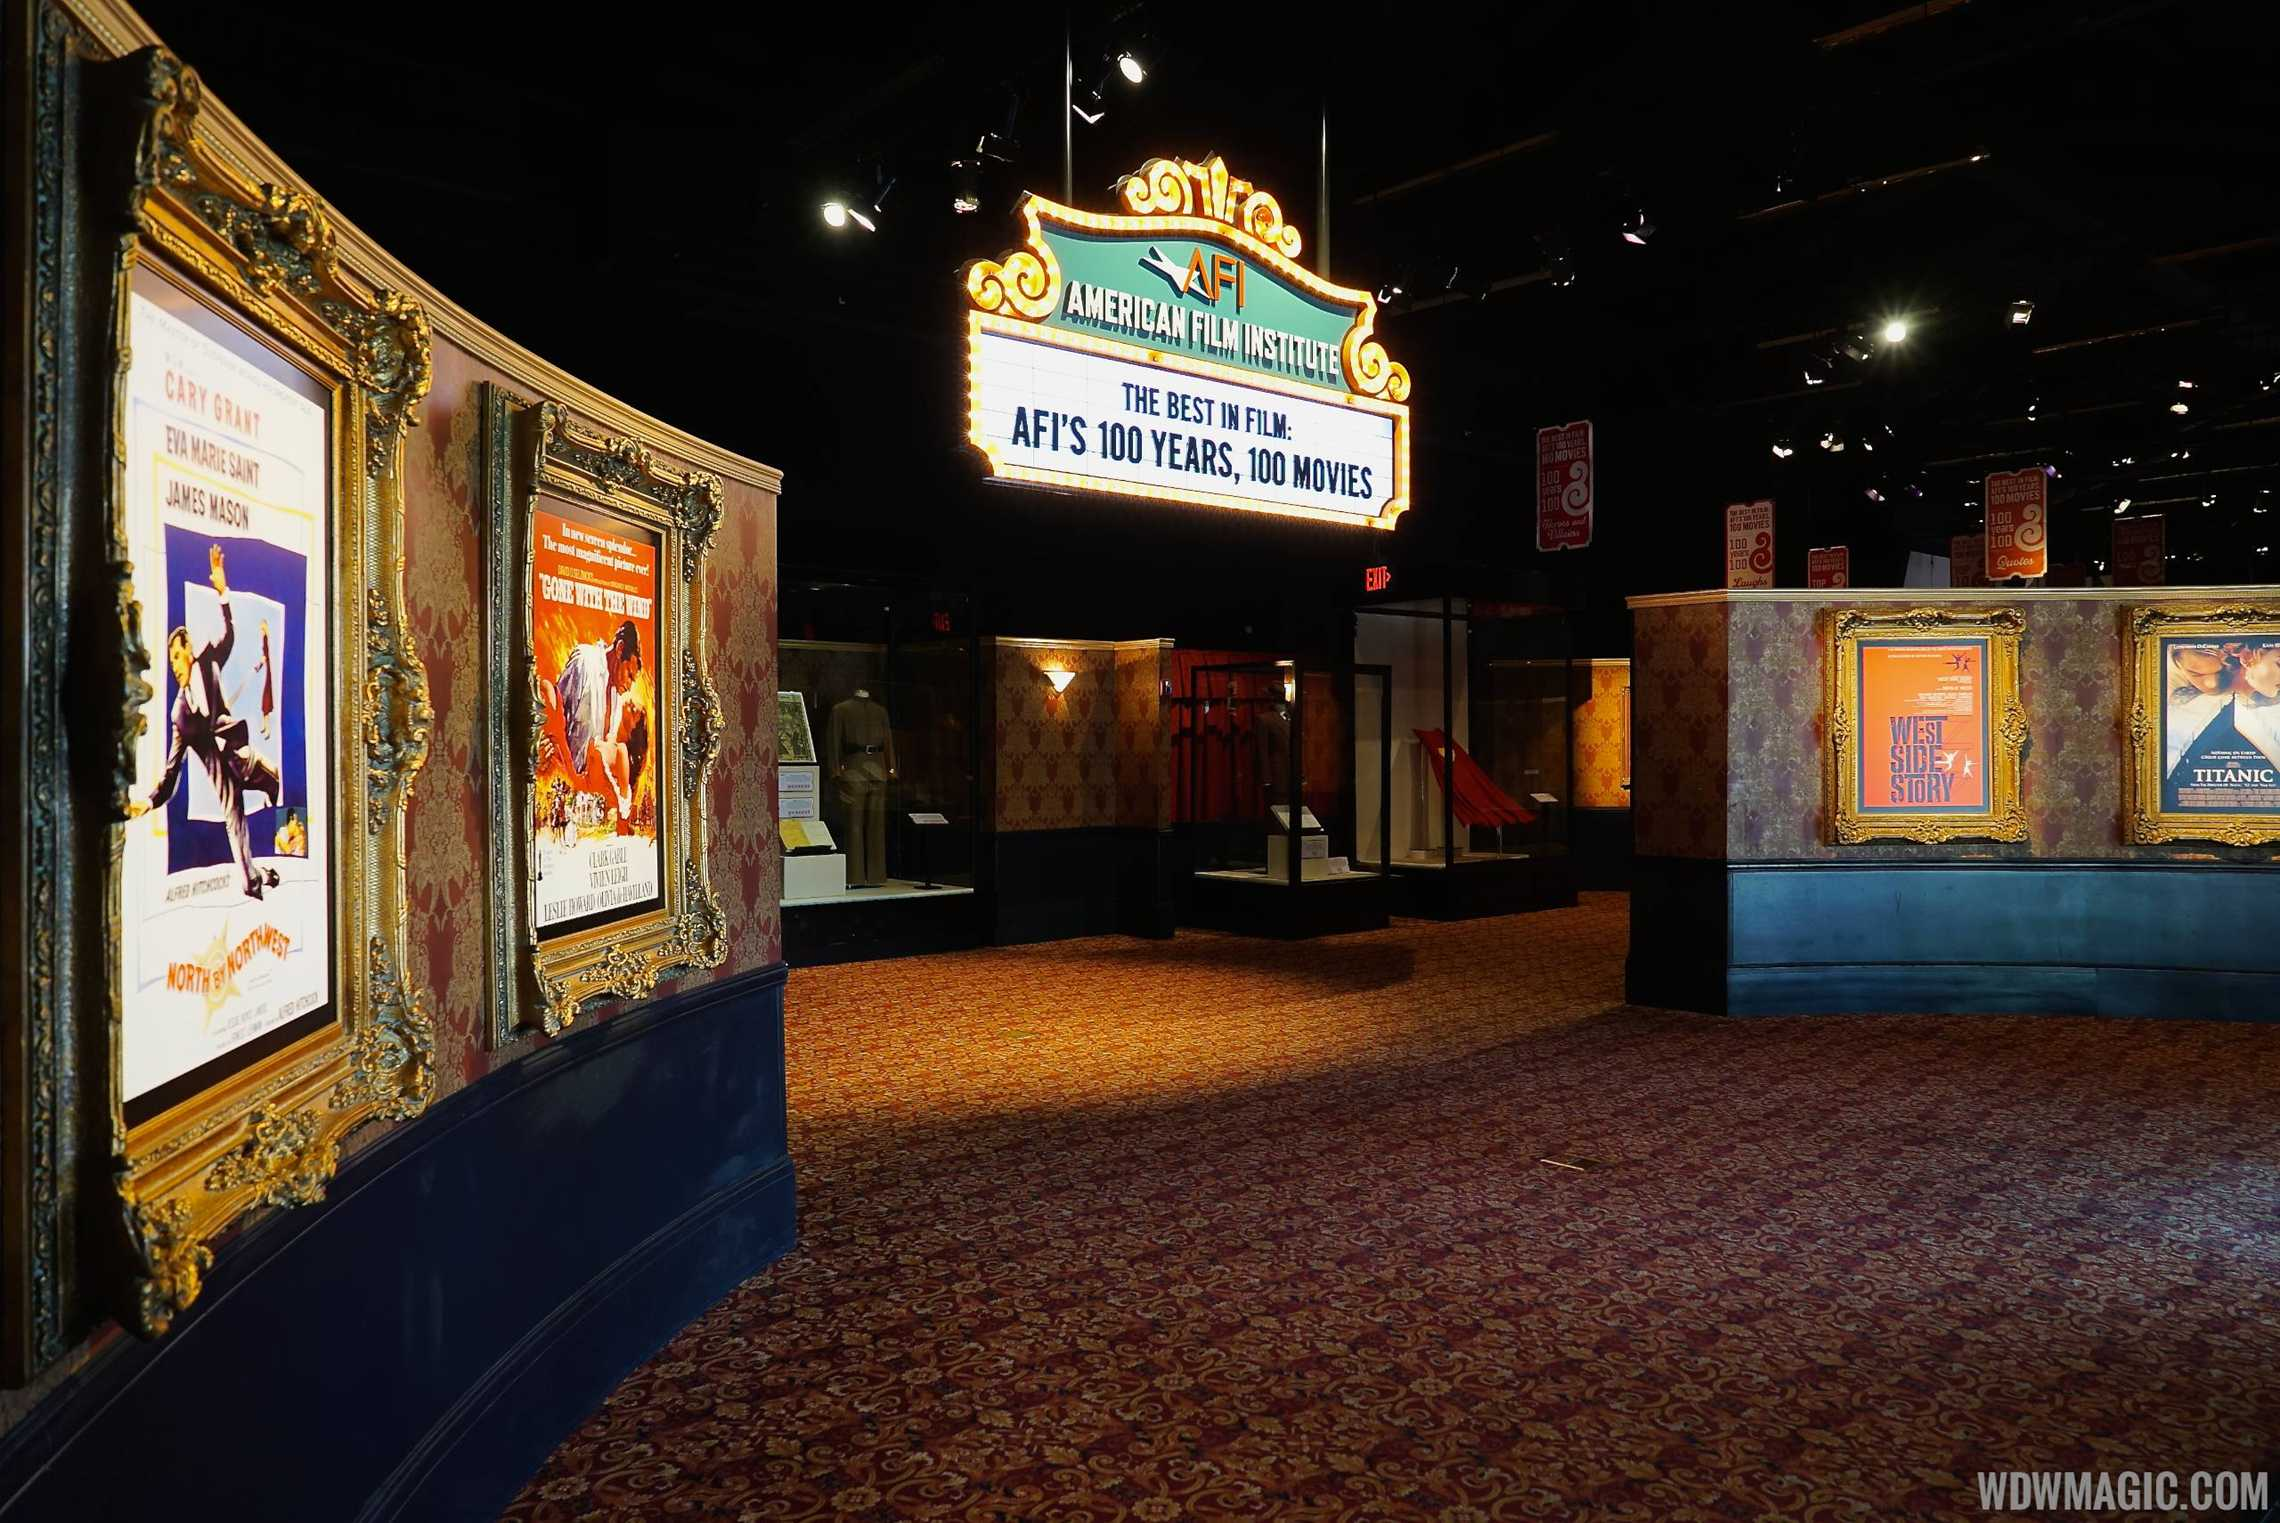 American Film Institute exhibit - Lobby